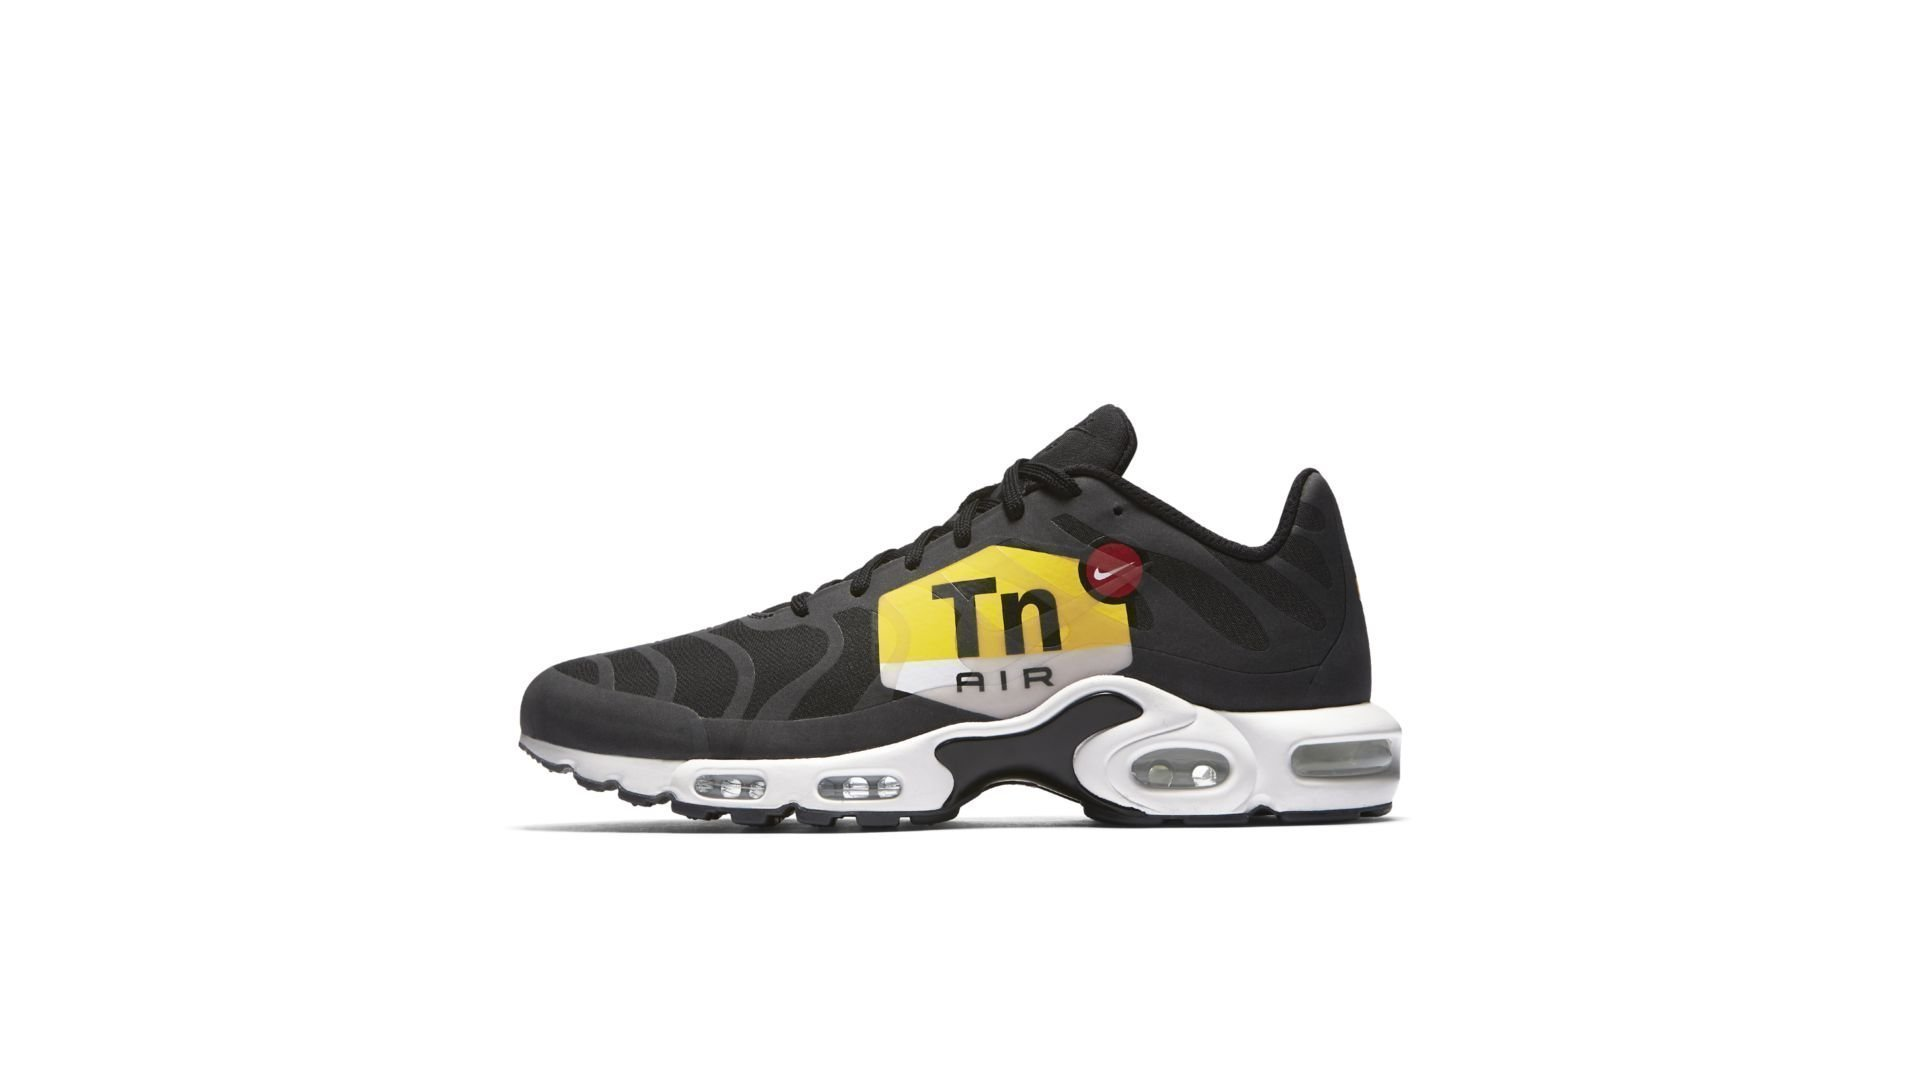 Nike Air Max Plus AJ0877-001